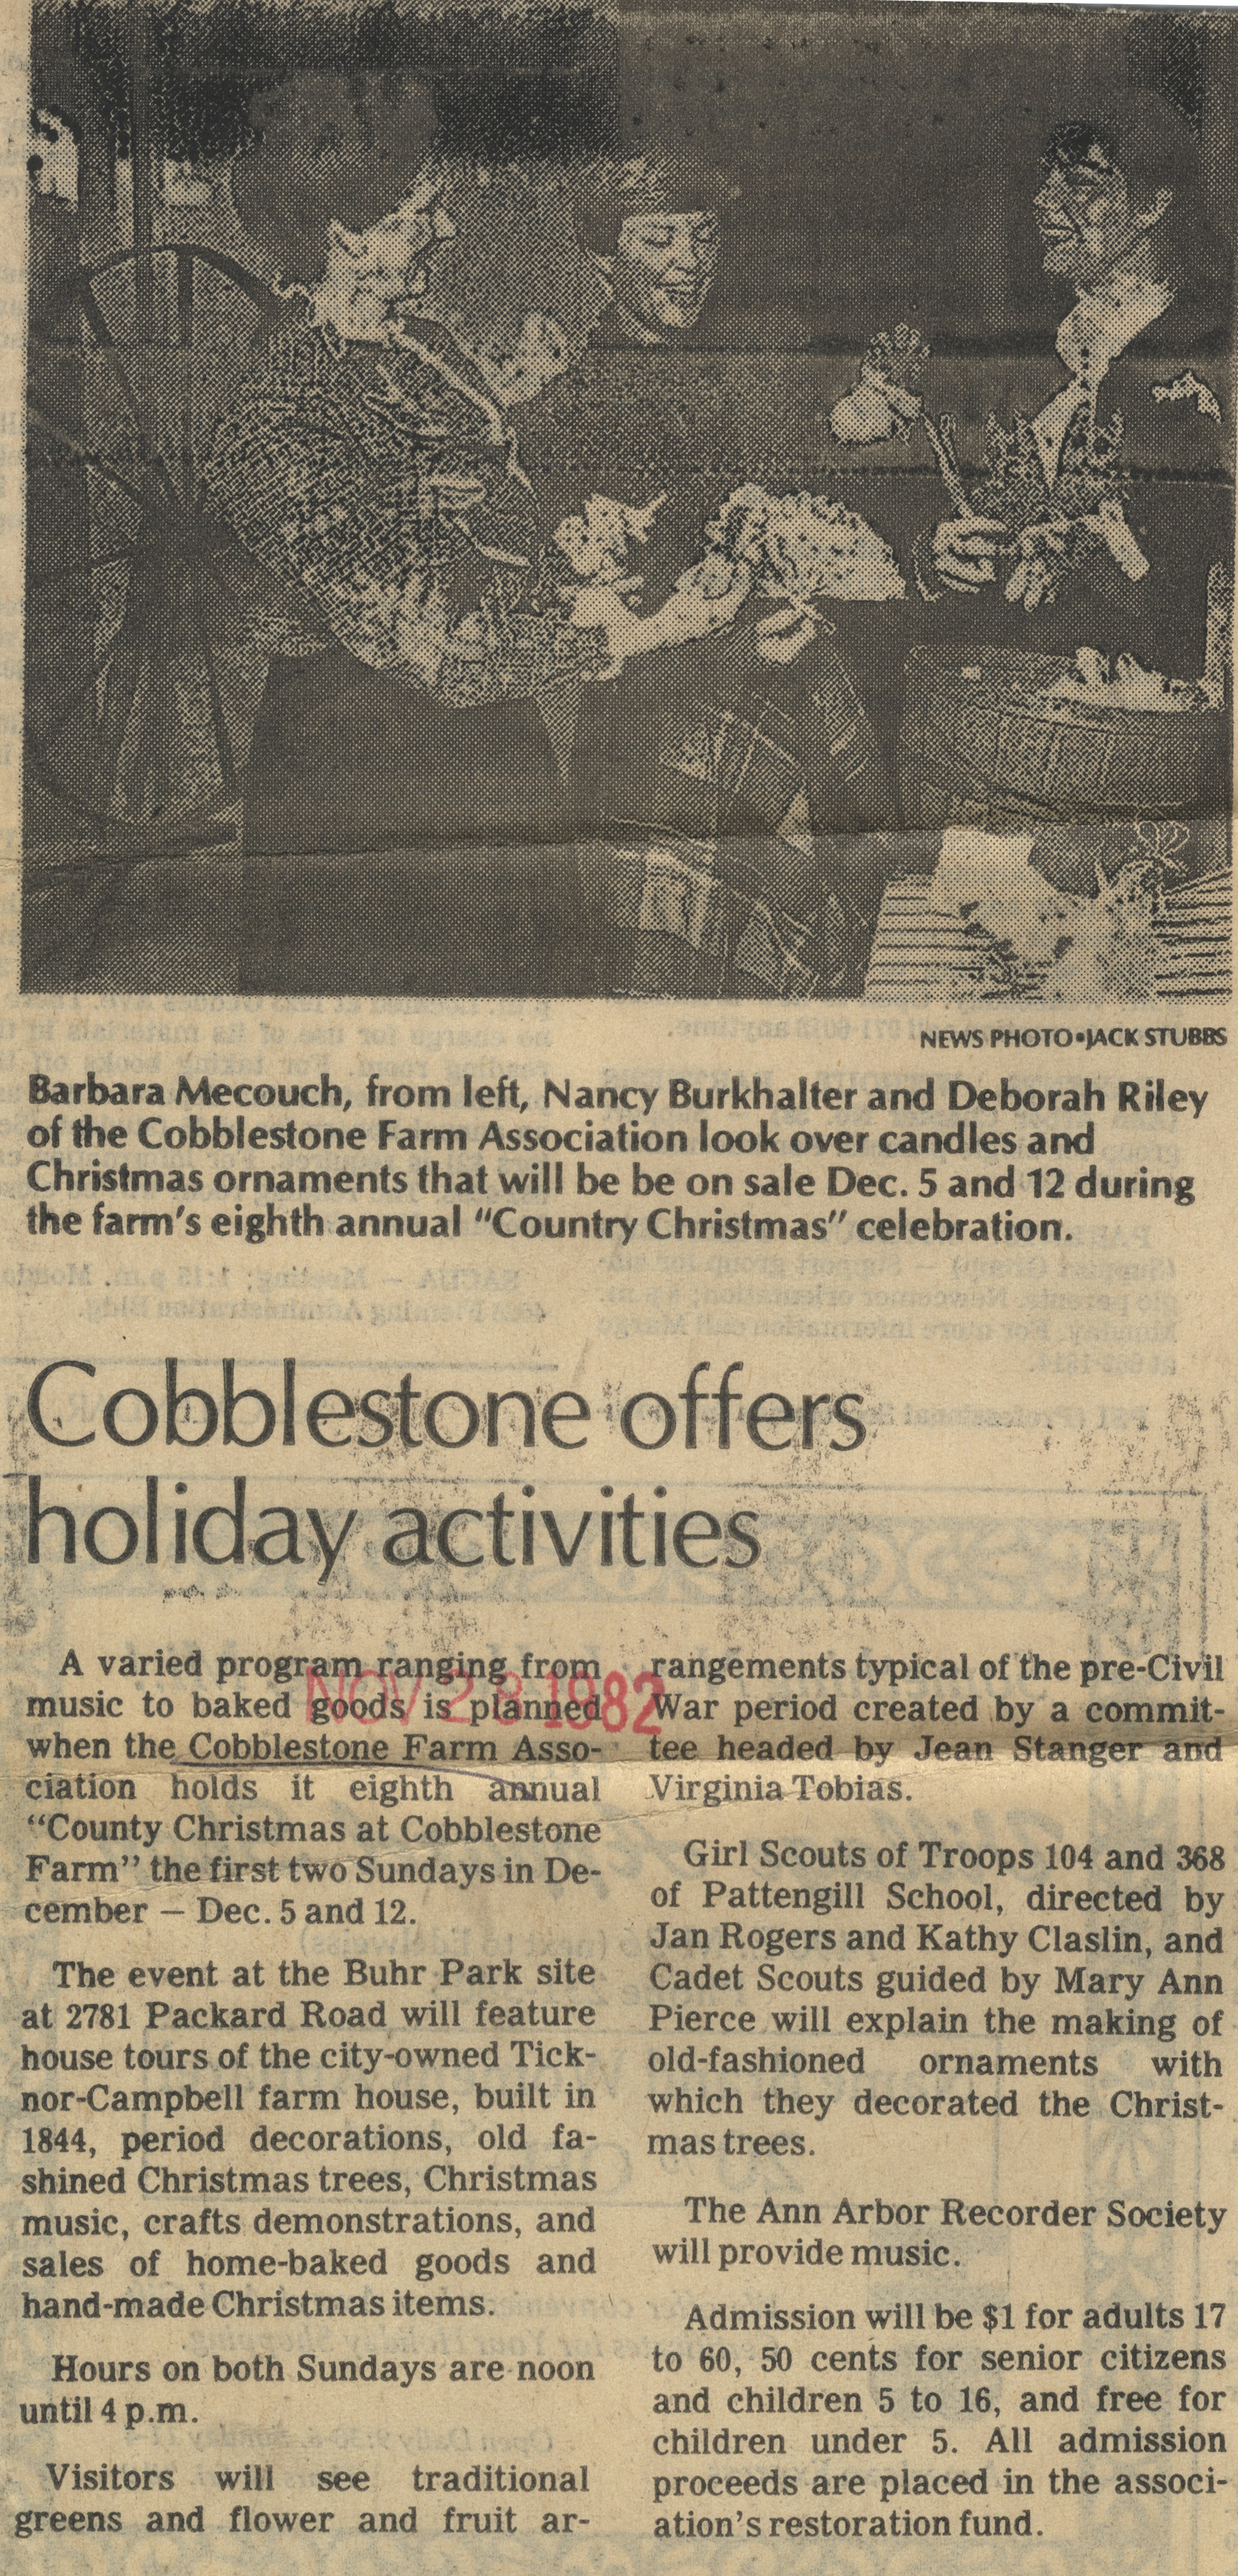 Cobblestone Offers Holiday Activities image